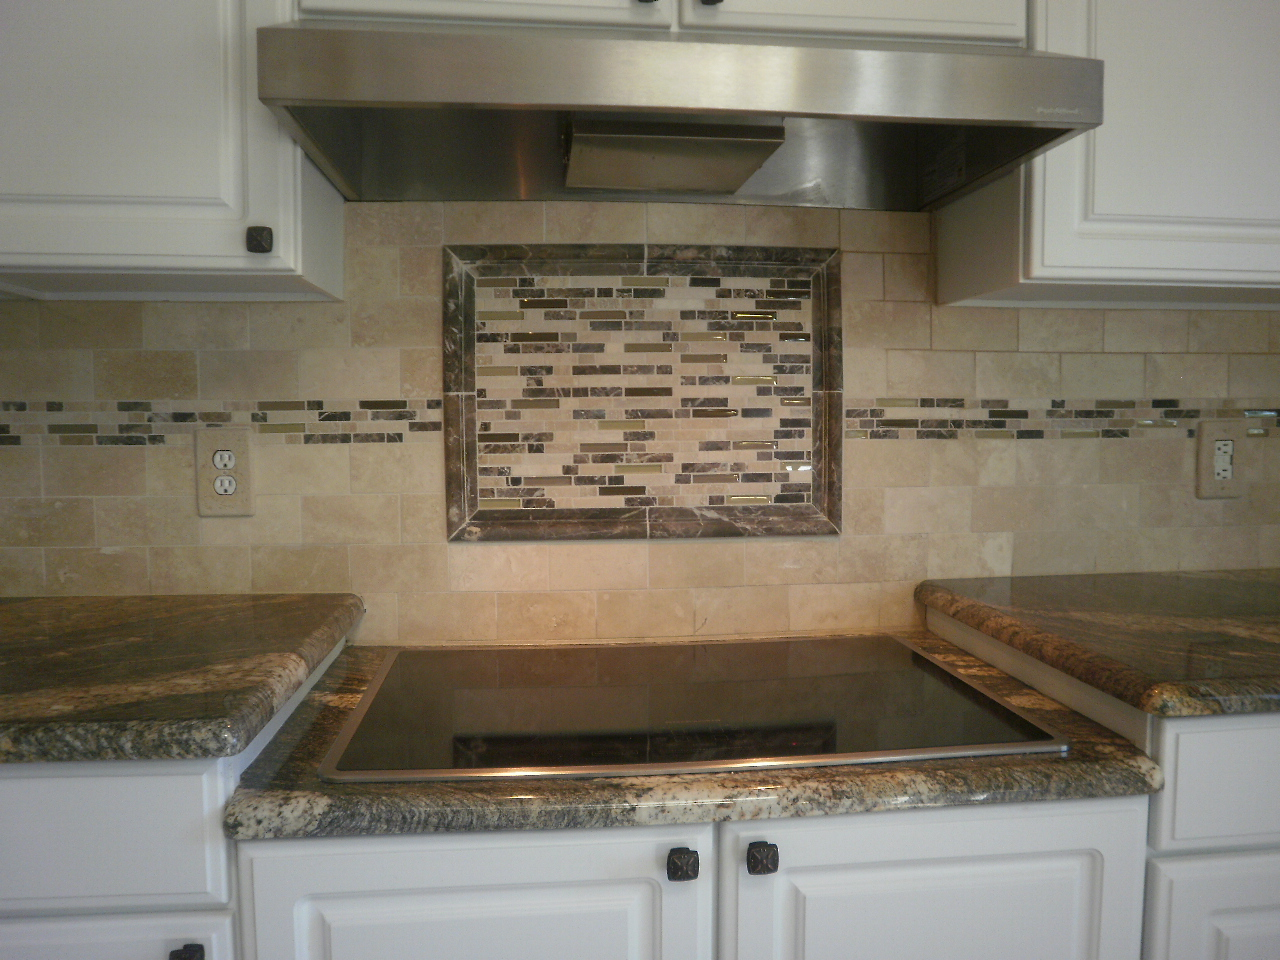 kitchen backsplash ideas glass tile afreakatheart glazzio glass tile backsplash 2 antico stone